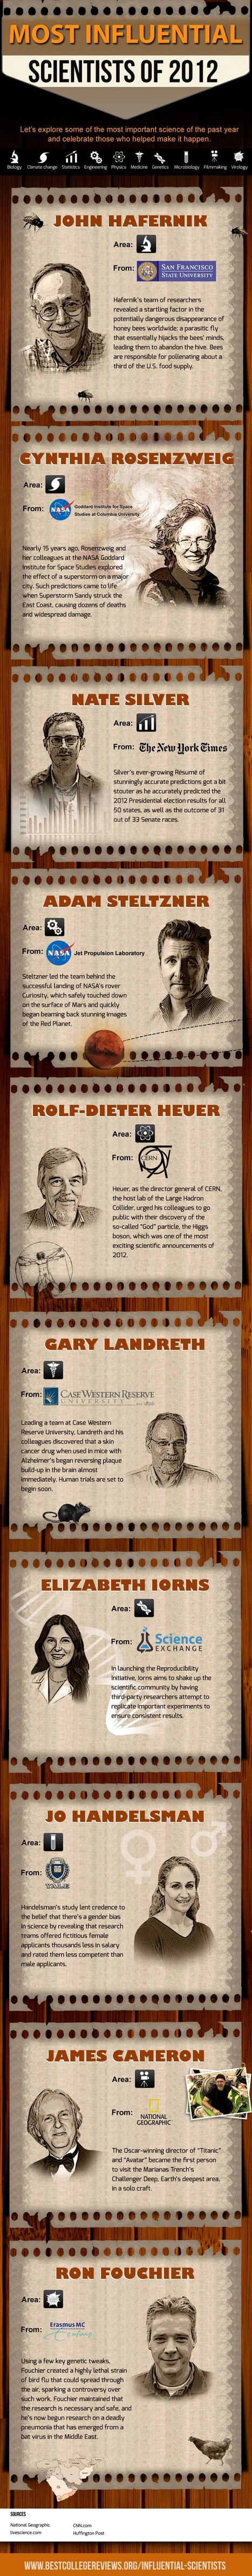 The Most Influential Scientists of 2012 | CrowdSourcing InfoGraphics | Scoop.it